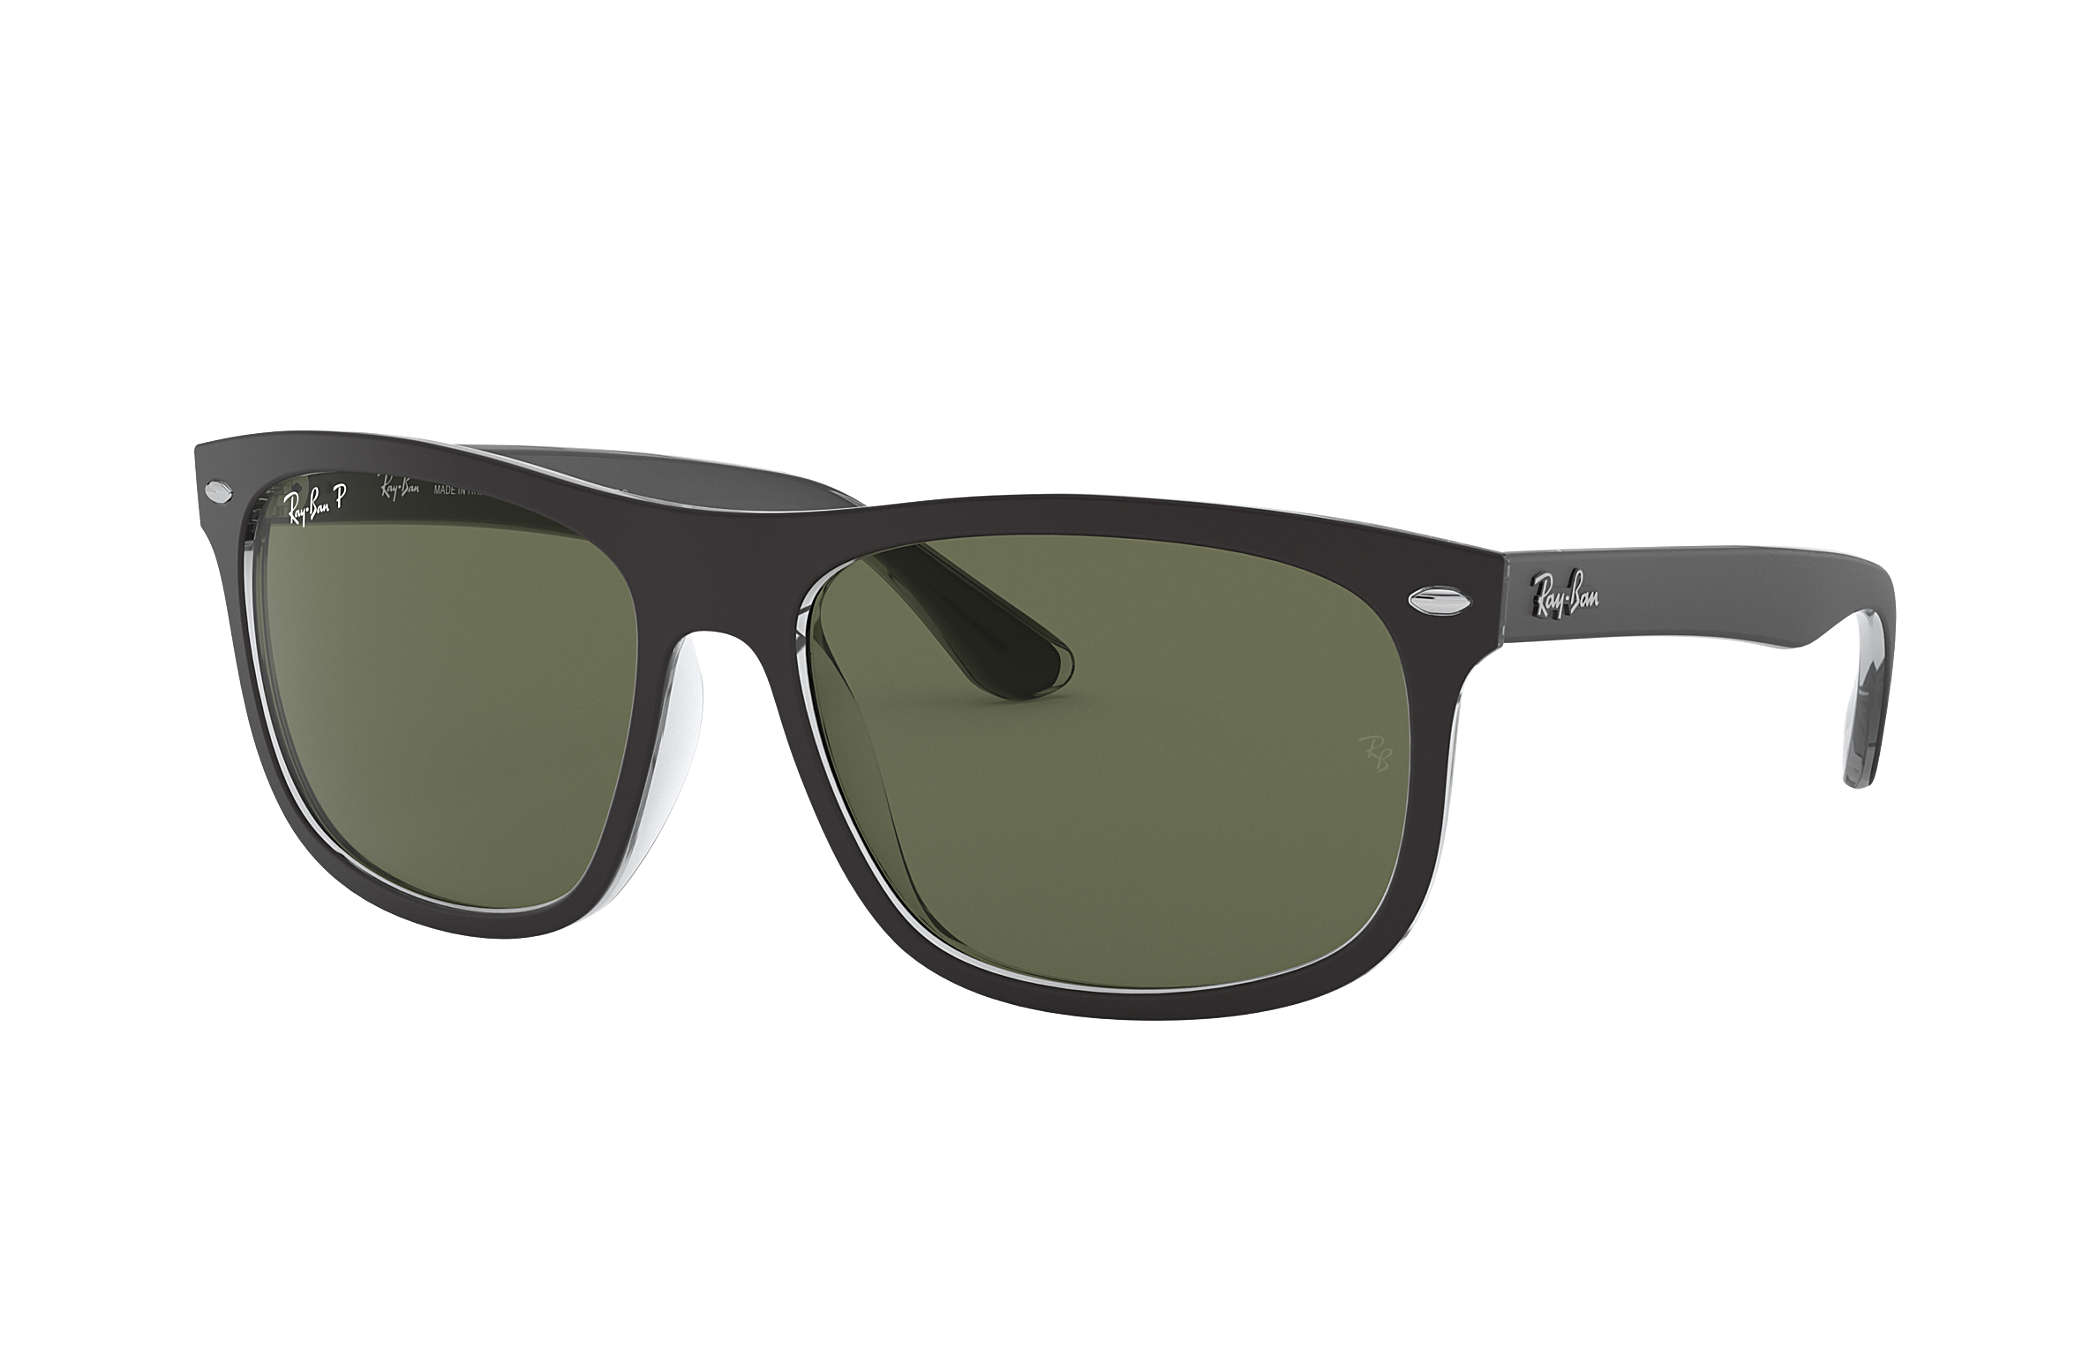 Ray-Ban Jackie Ohh Ii RB4098 Black - Nylon - Grey Lenses ... be9ee86771